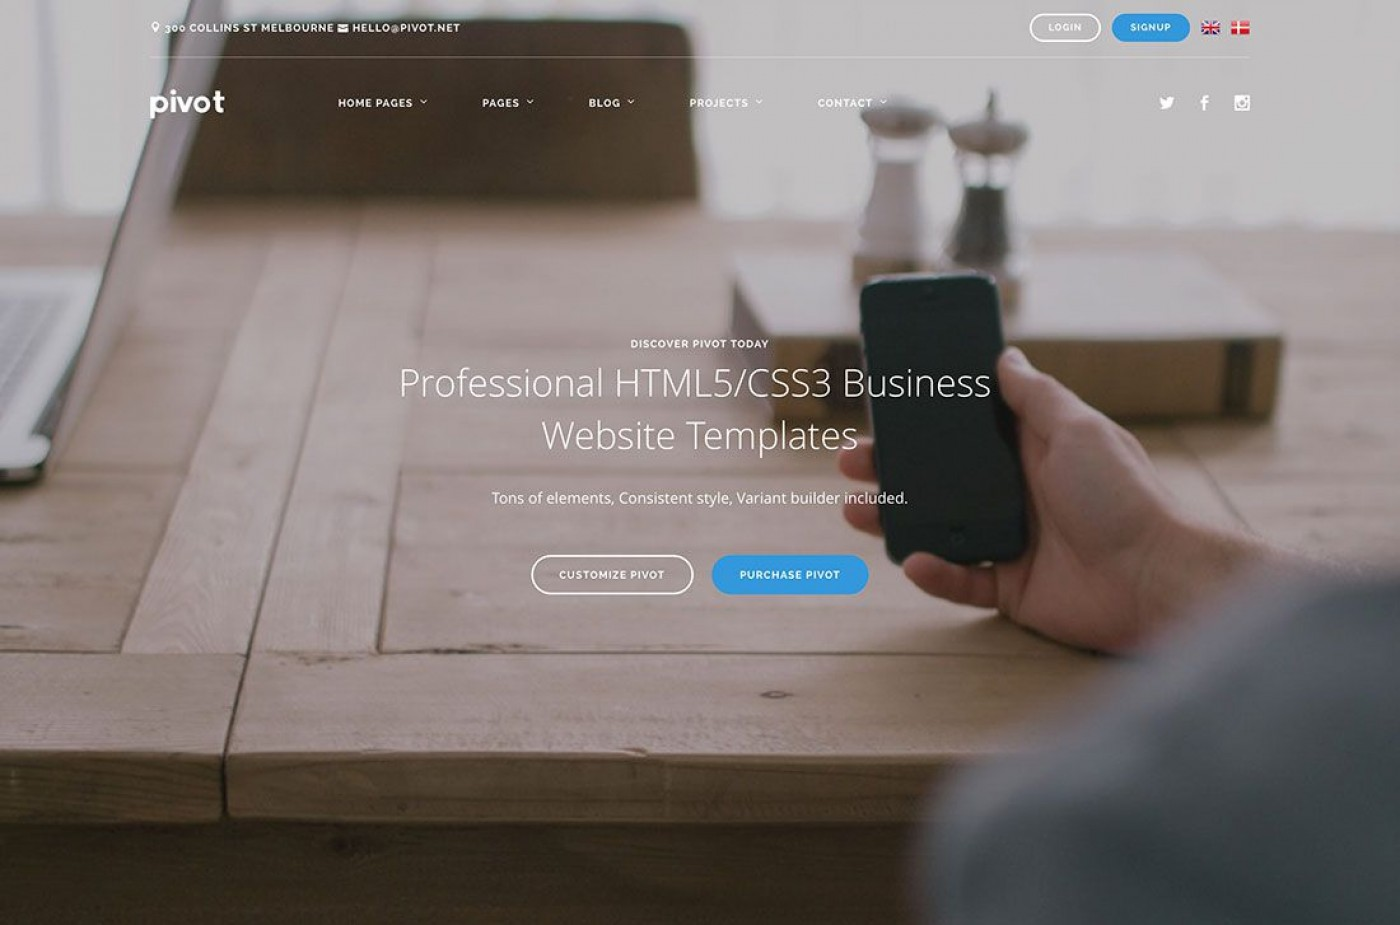 004 Archaicawful Professional Busines Website Template Free Download Wordpres Image 1400